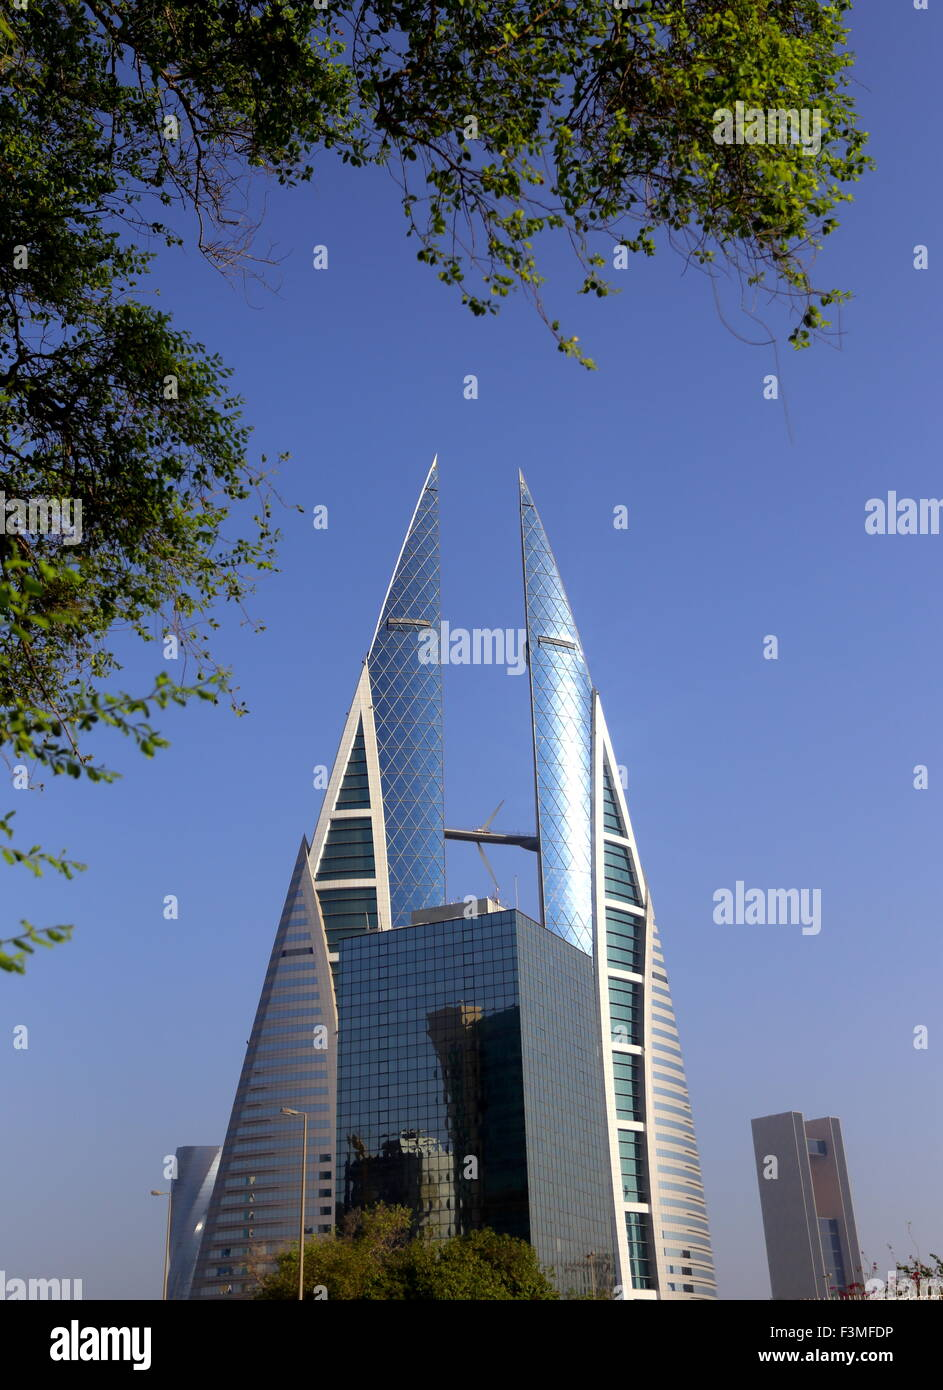 World Trade Centre, with the Four Seasons Hotel in the background, Manama, Kingdom of Bahrain - Stock Image